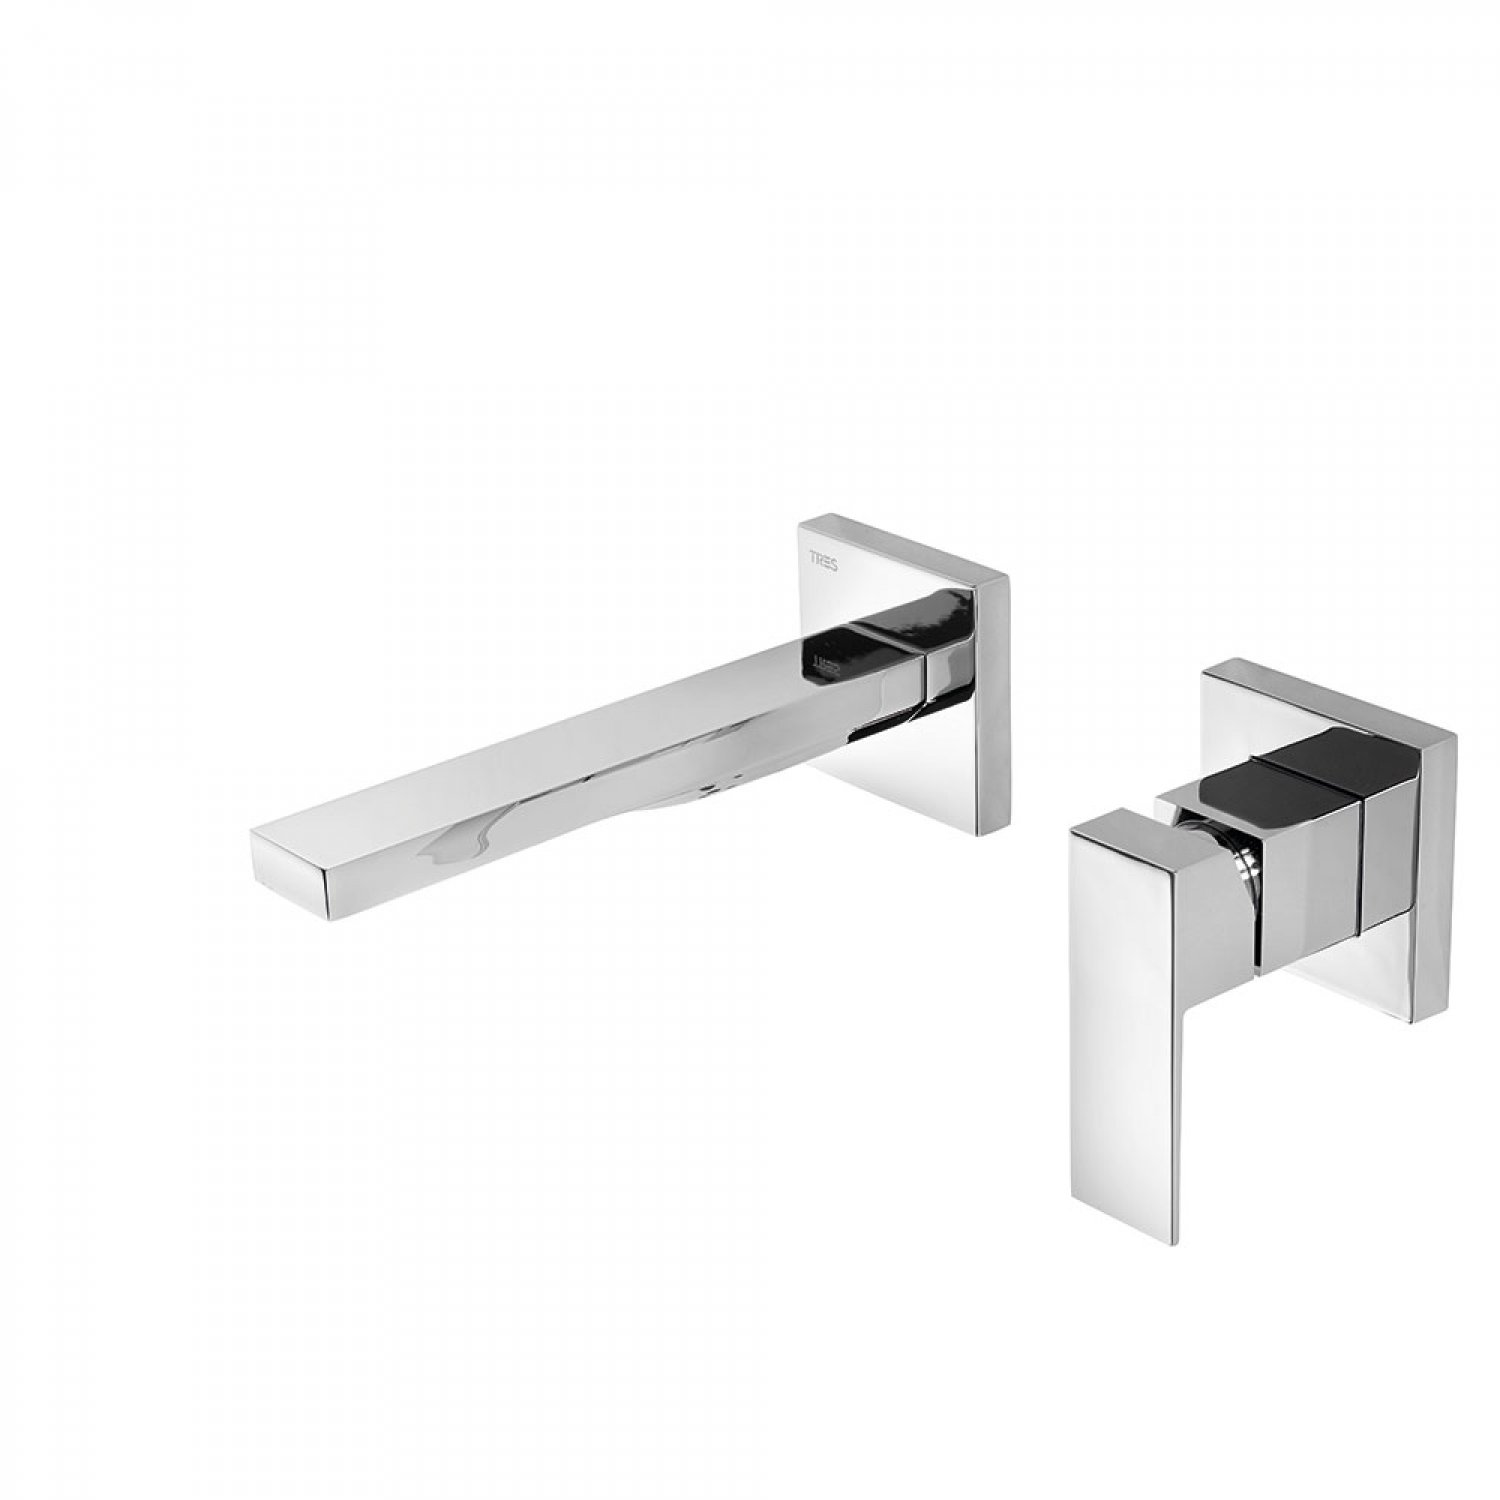 http://desidea.hu/wp-content/uploads/2019/07/Single-lever-wall-washbasin-mixer-00620012.jpg